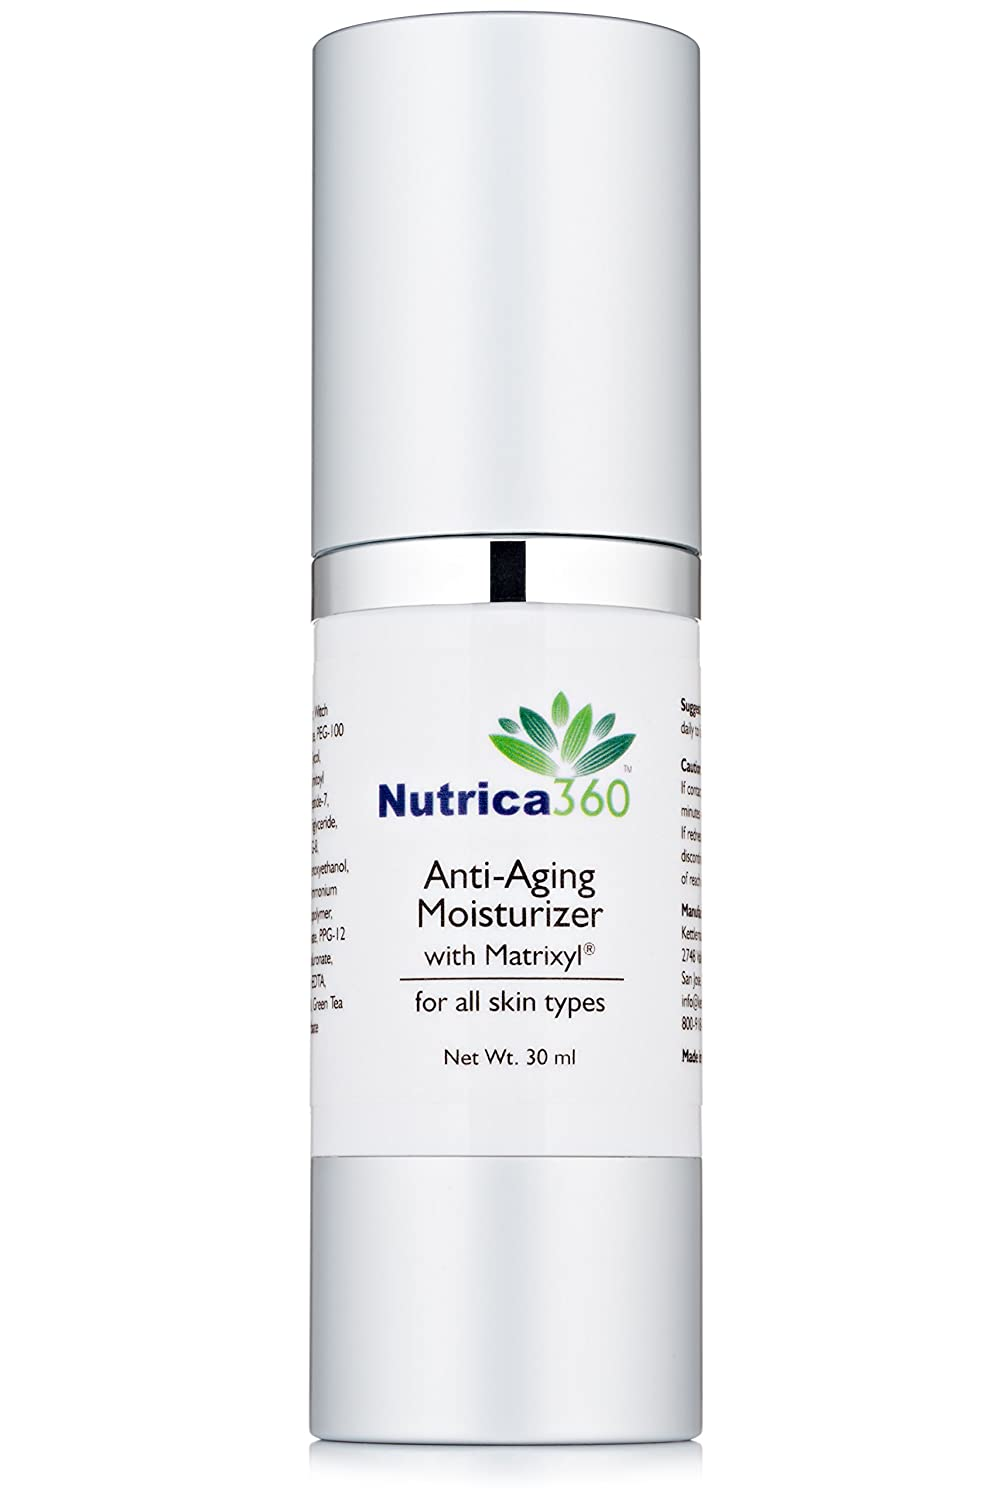 Nutrica360 Anti-Aging ! Super beauty product restock quality top! Moisturizer with Matrixyl for Outlet SALE typ skin all